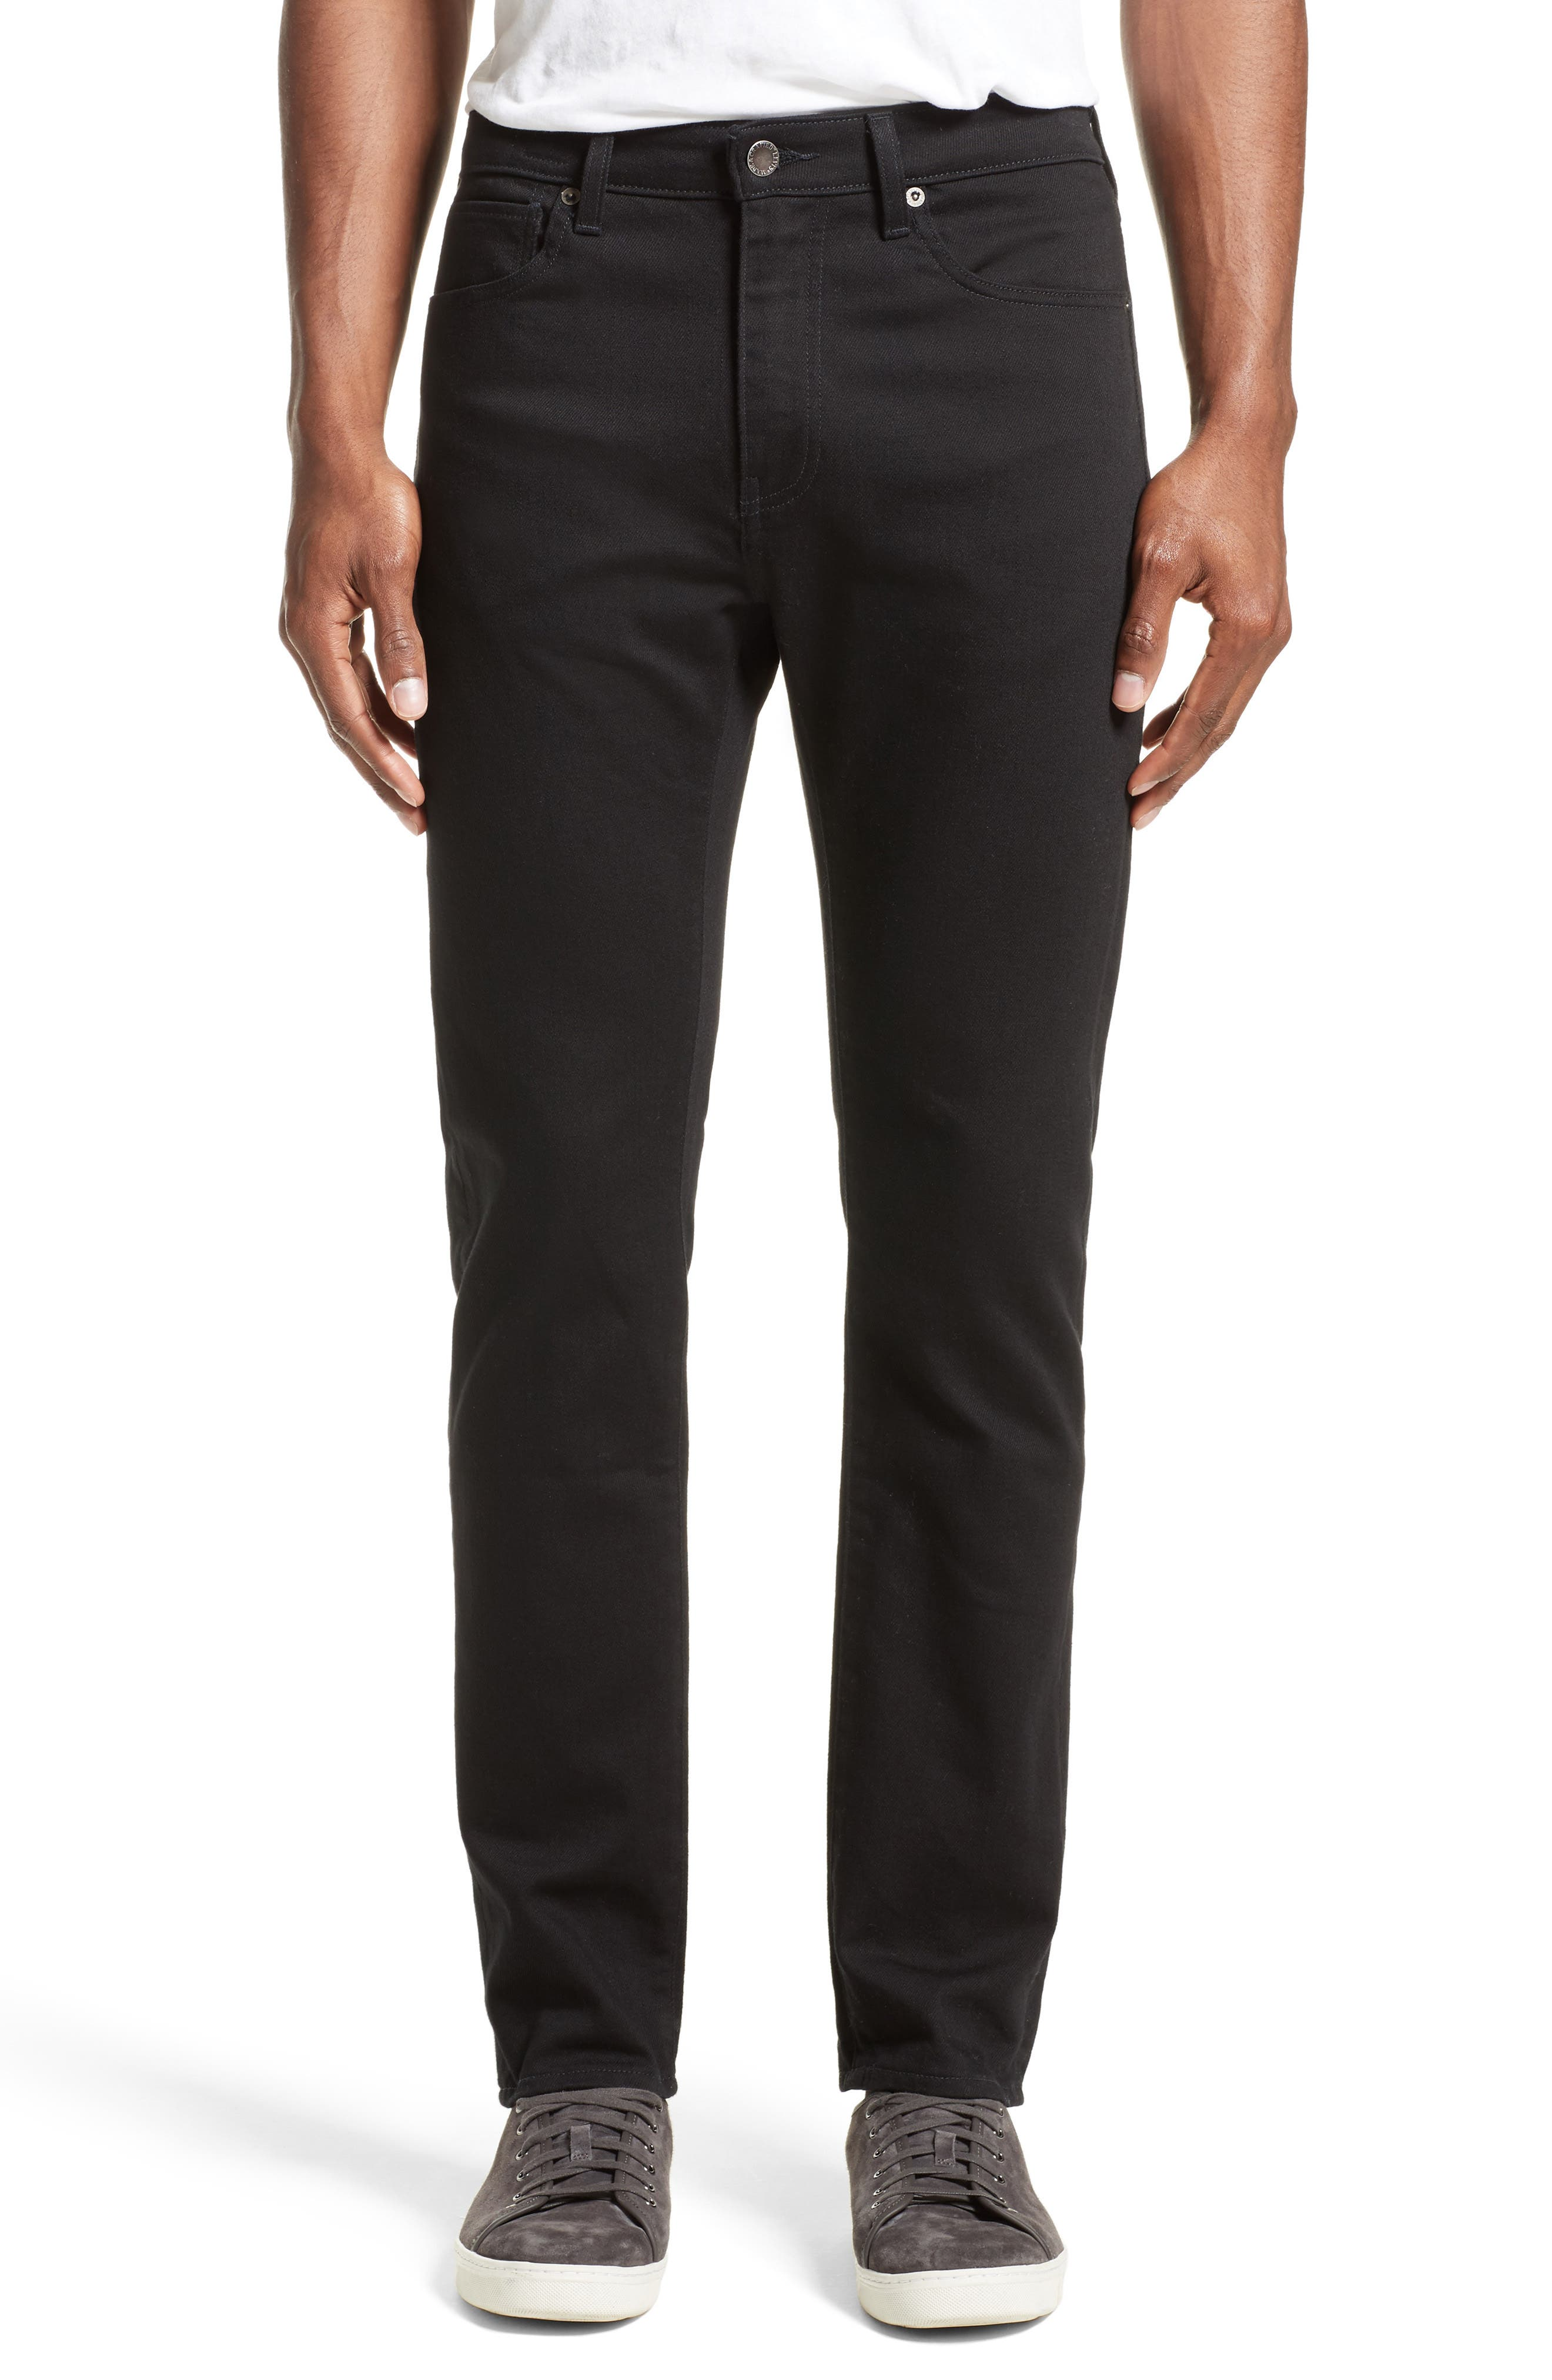 'Tack' Slim Fit Jeans,                         Main,                         color, Black Rinse